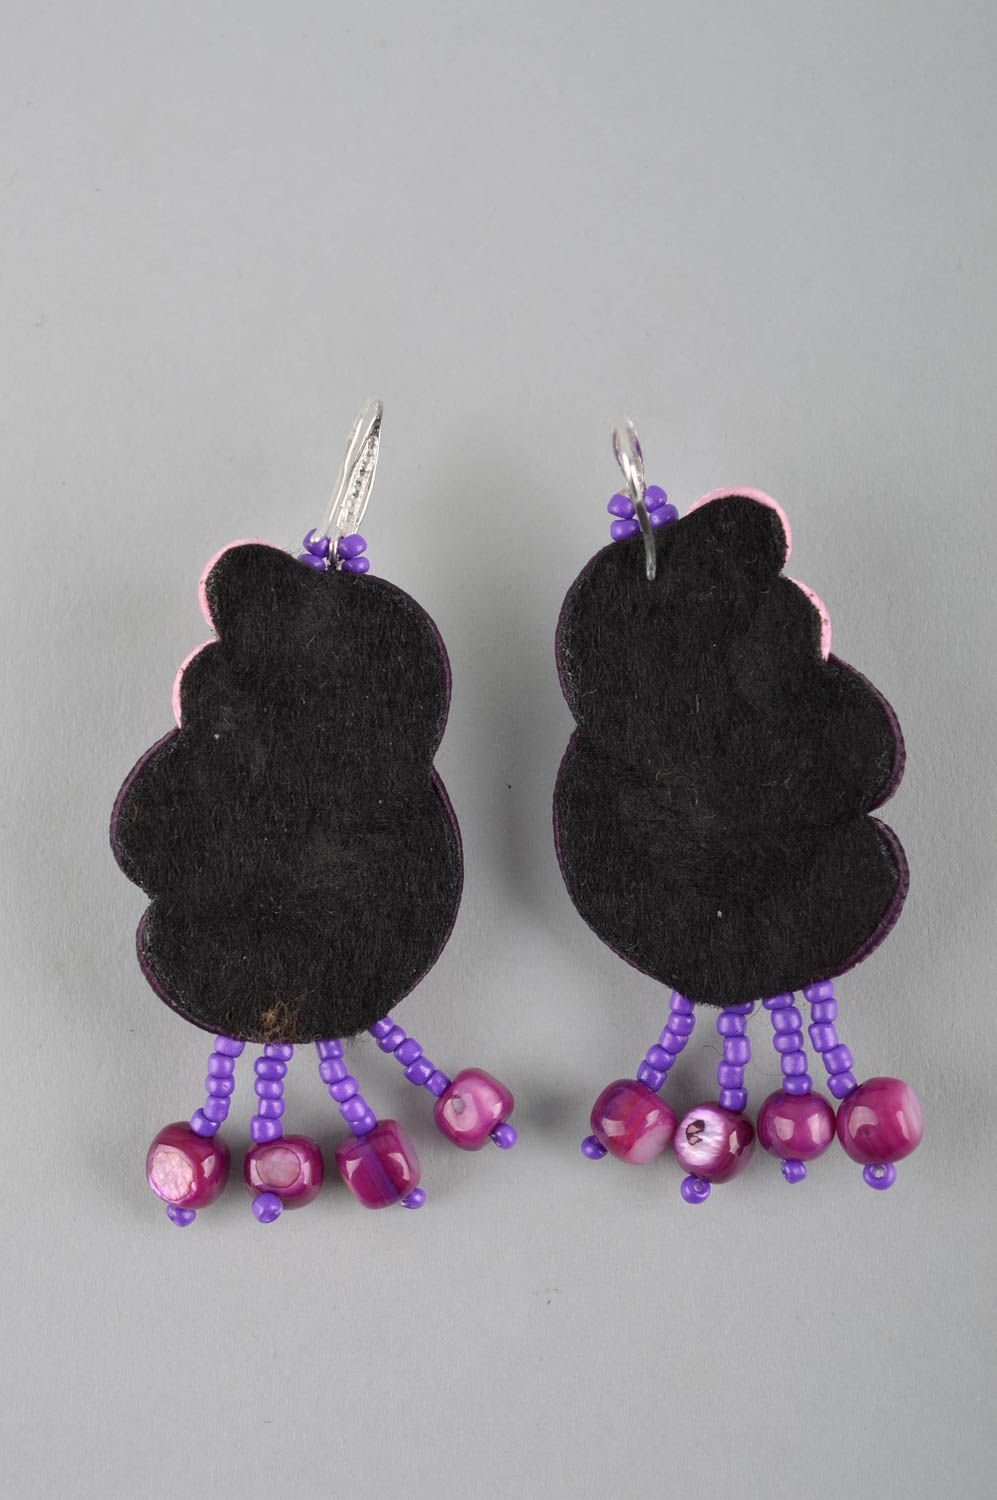 Large handmade soutache earrings textile earrings beaded earrings gift ideas photo 3